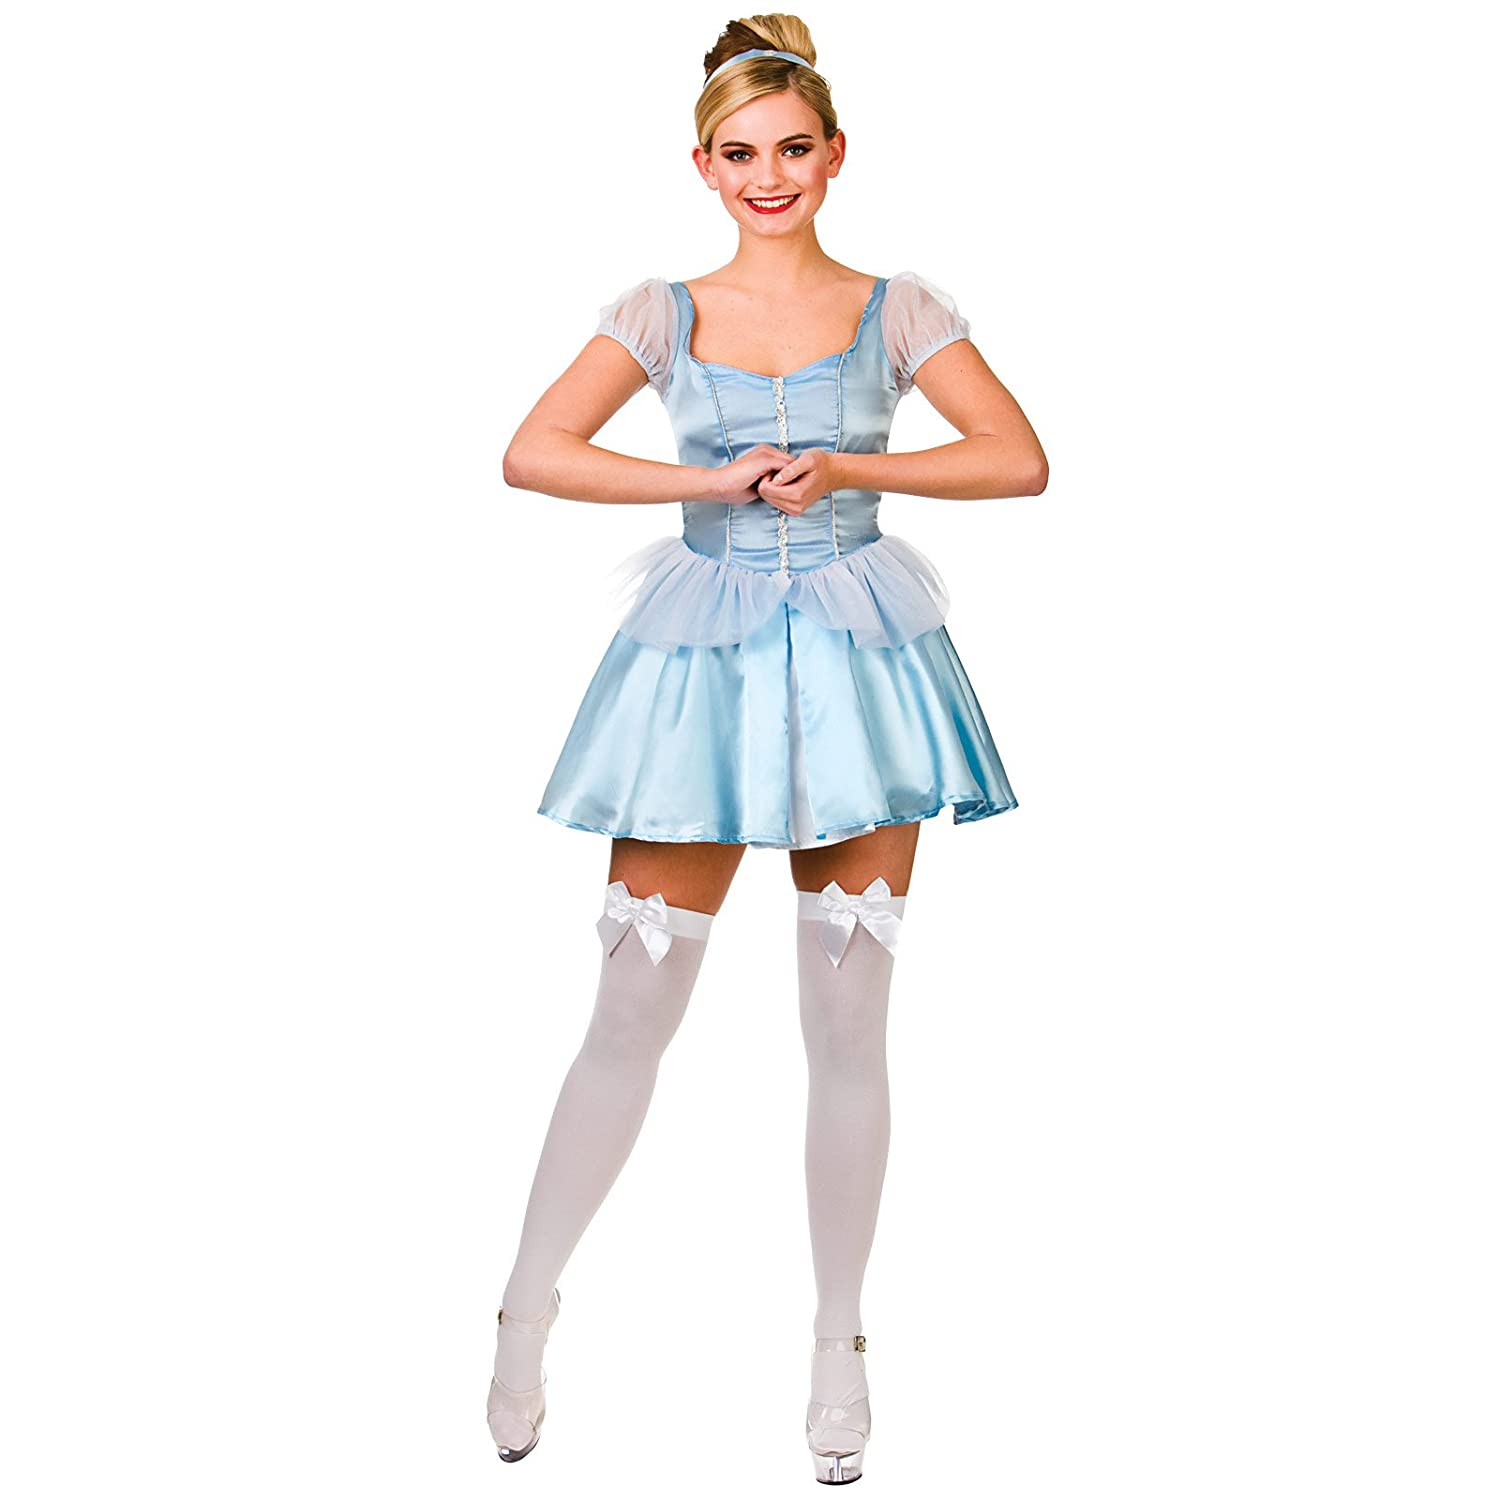 Ladies Cute Cinders Cinderella Fancy Dress Up Party Halloweeen Costume Outfit Amazon.co.uk Clothing  sc 1 st  Amazon UK & Ladies Cute Cinders Cinderella Fancy Dress Up Party Halloweeen ...